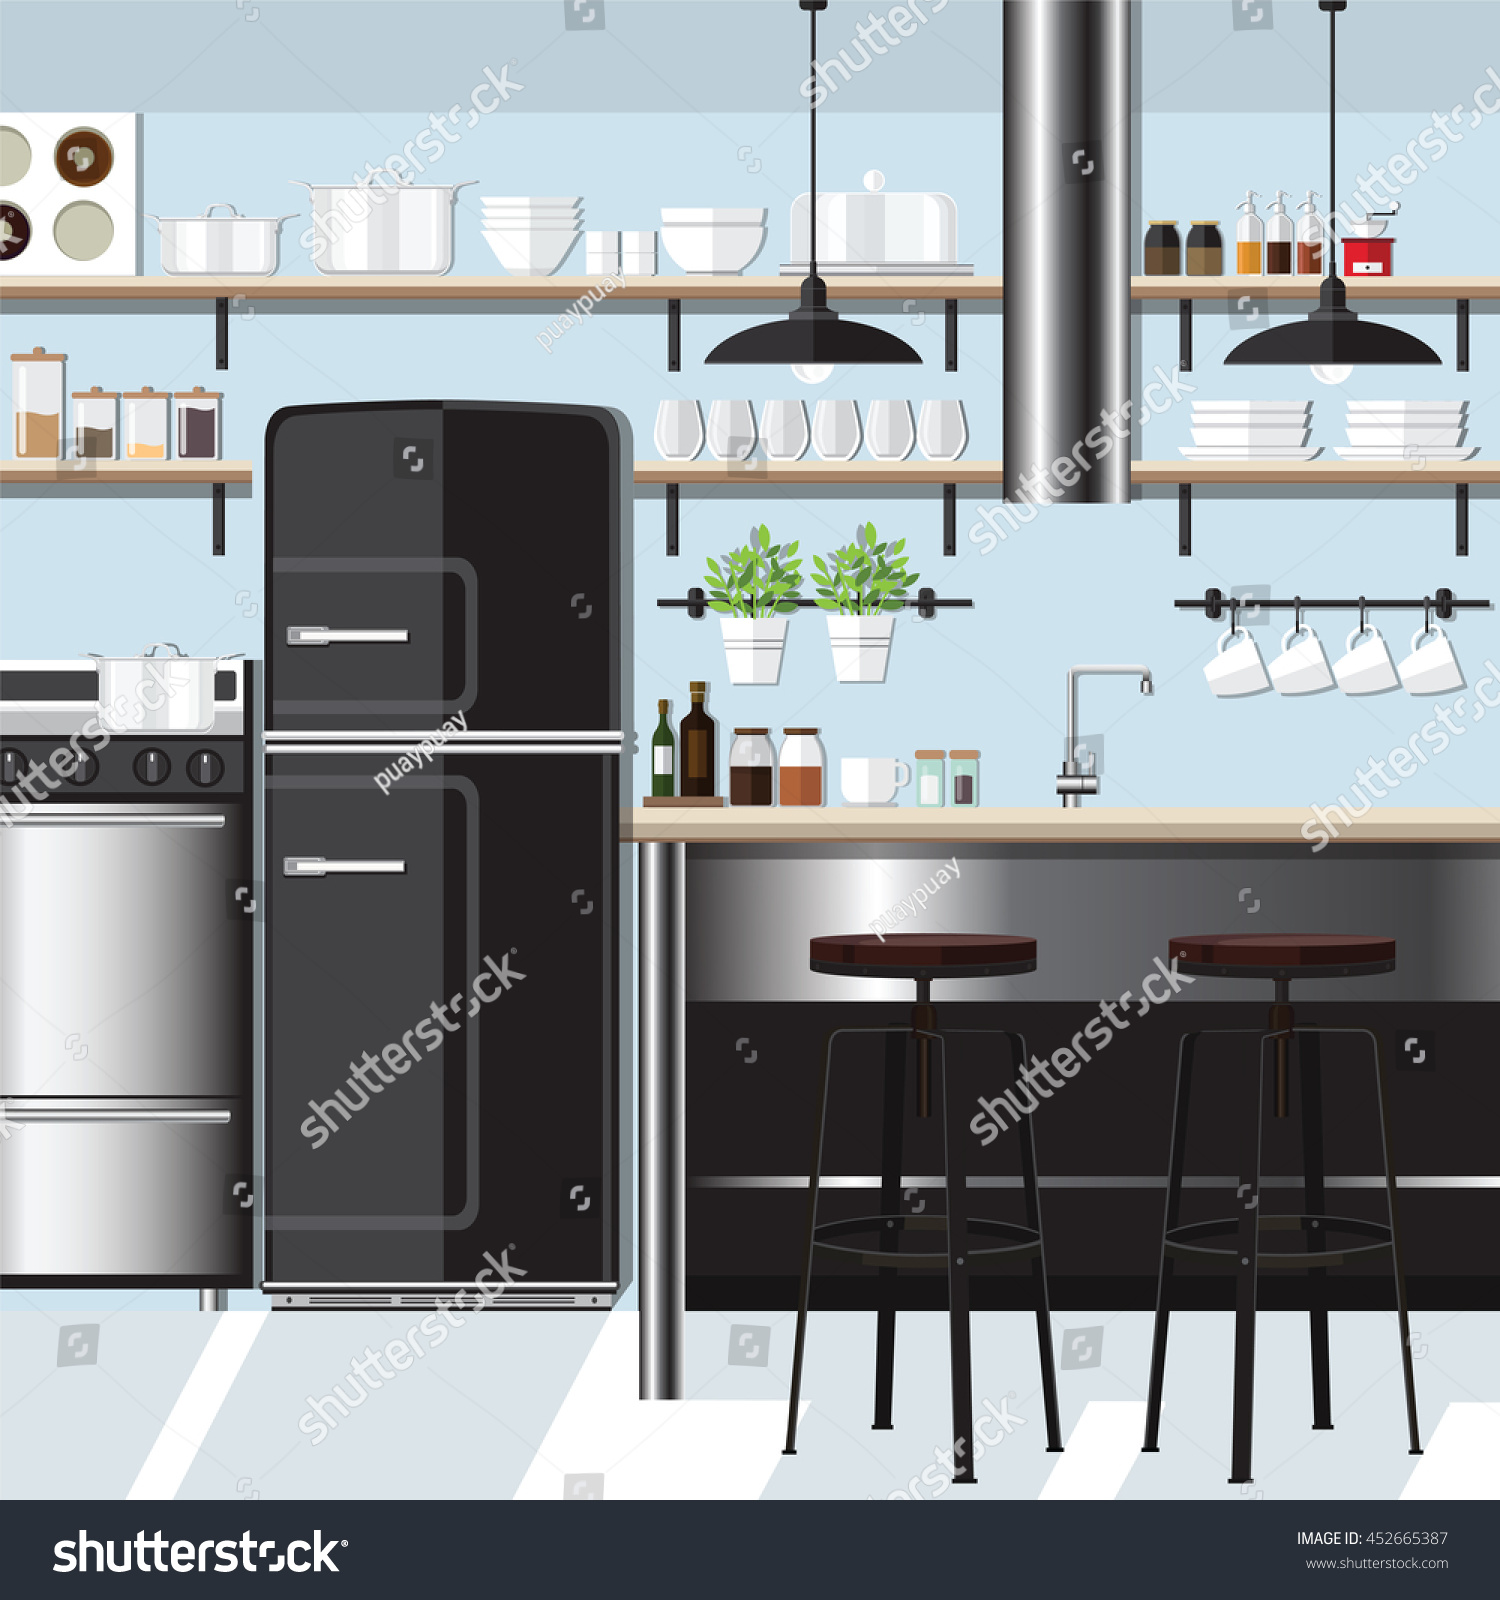 Flat Kitchen Interior With Bar Counter